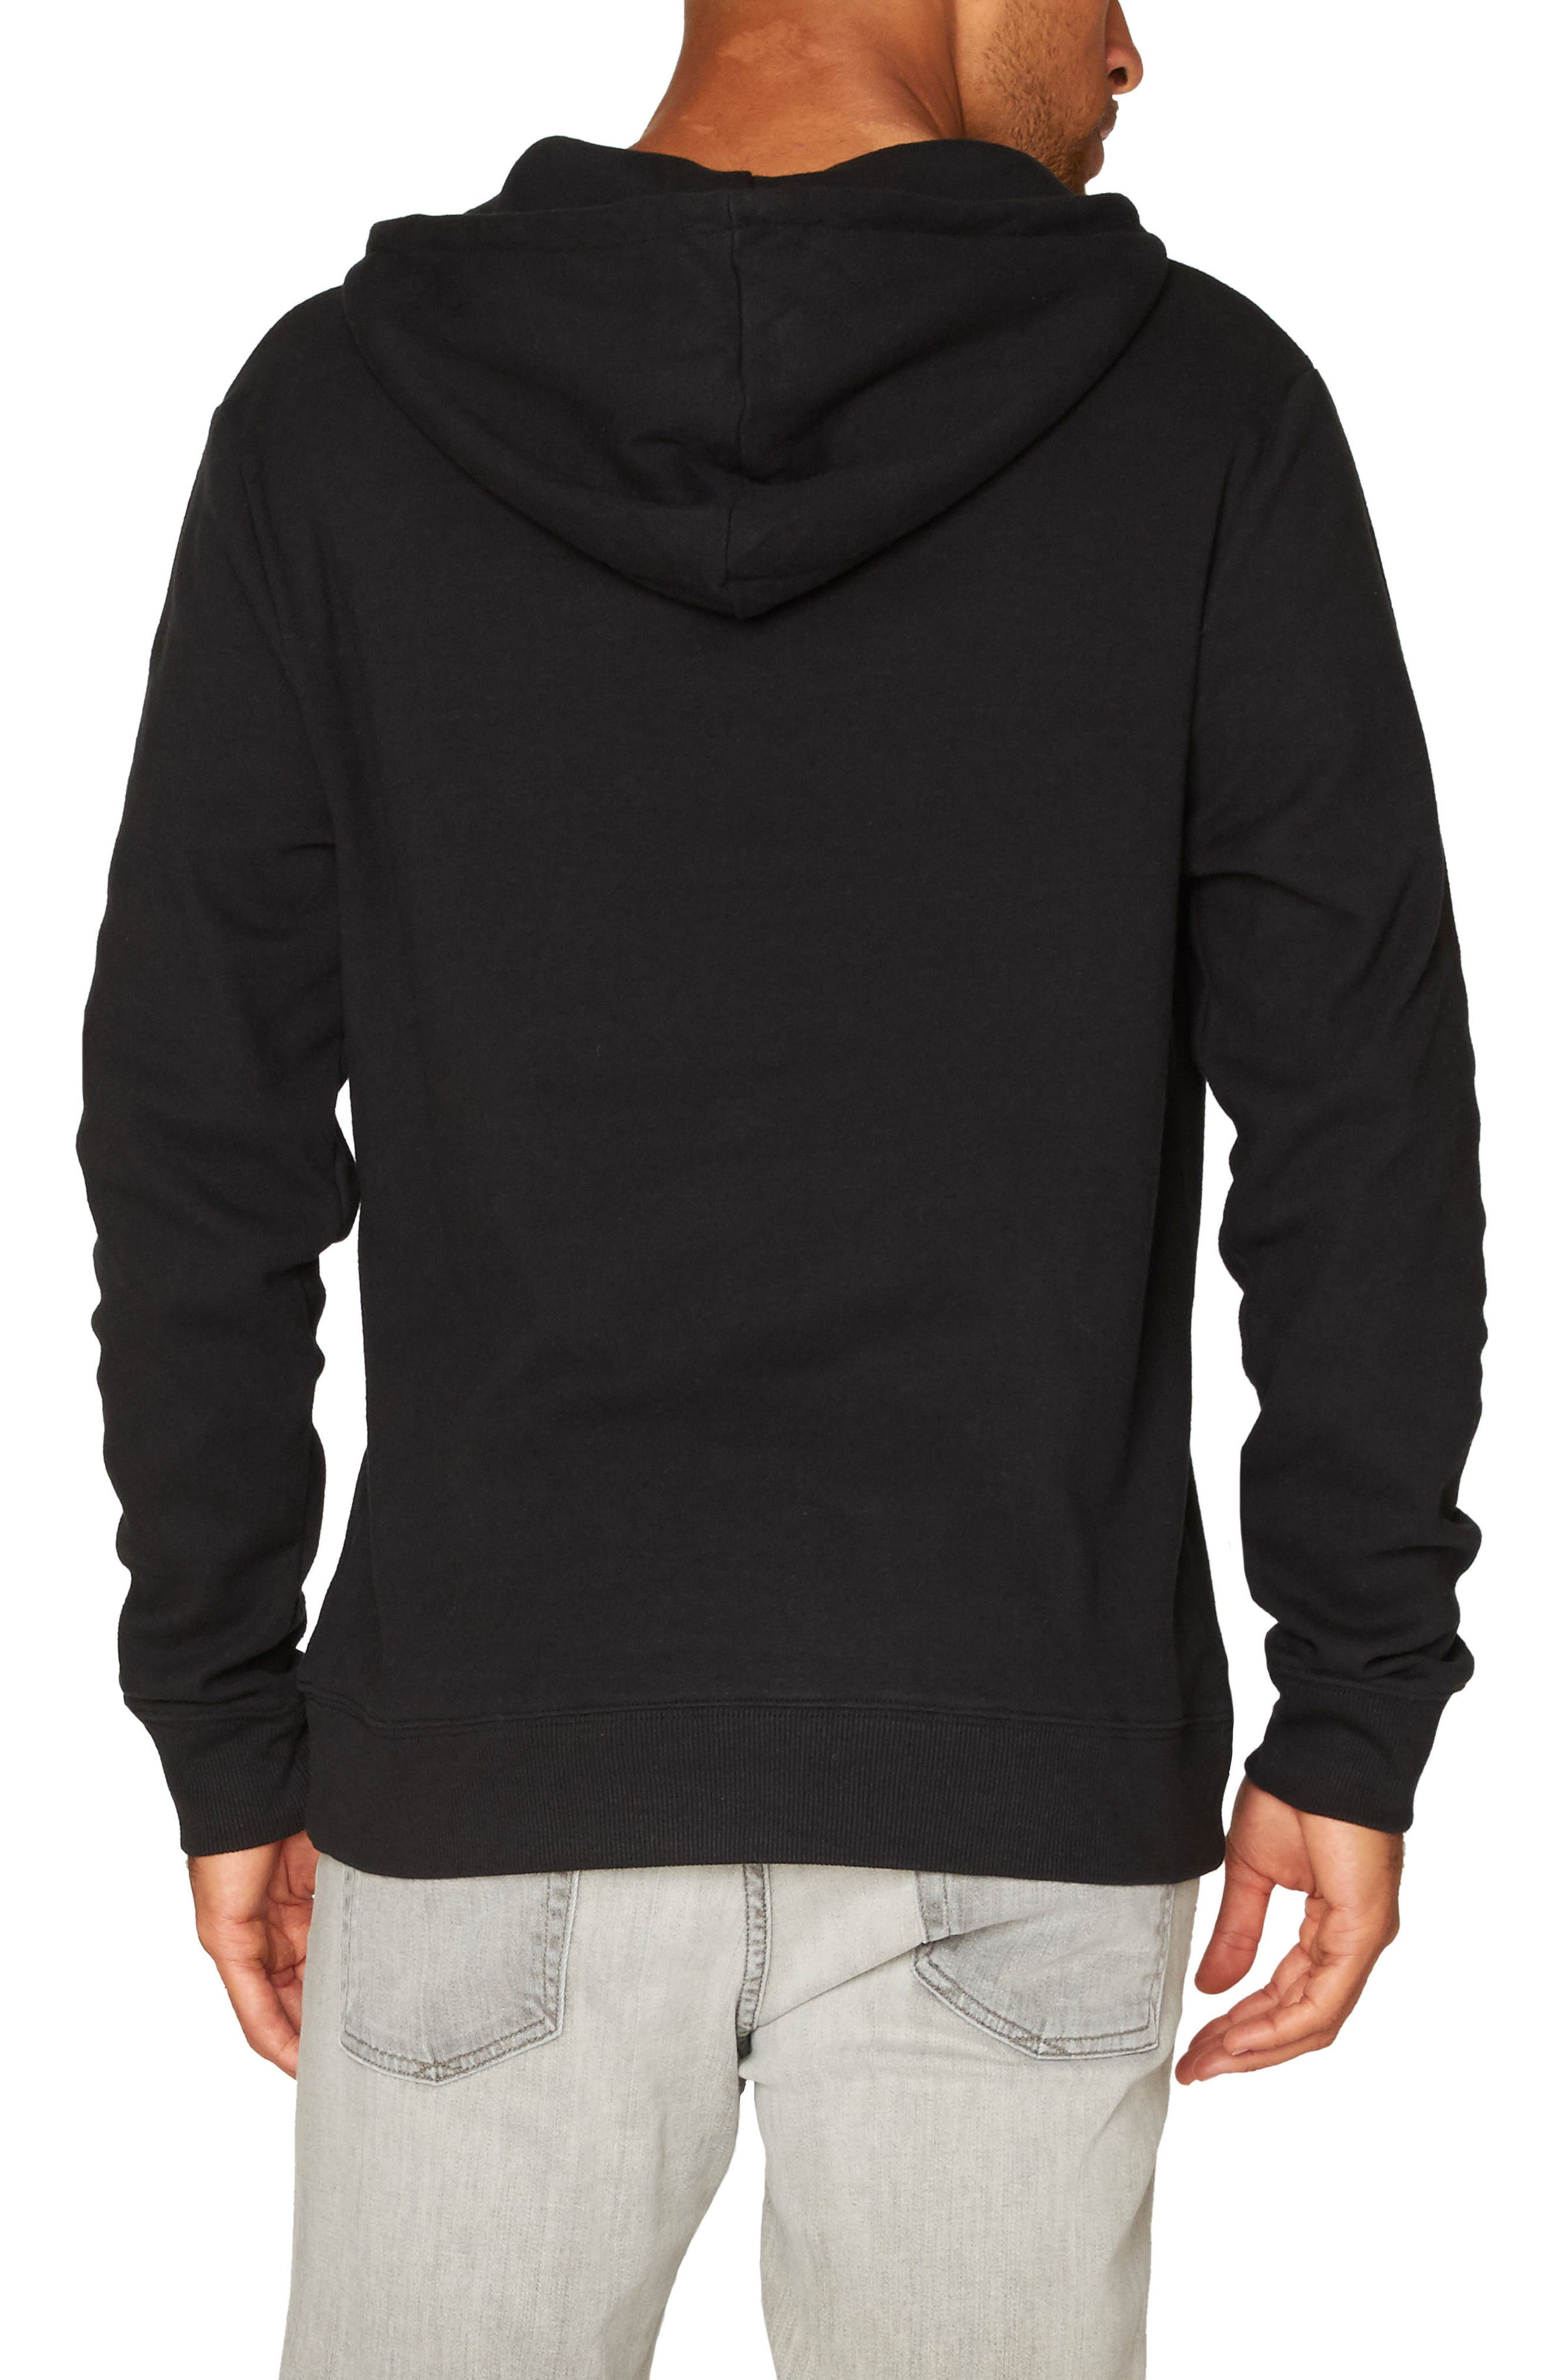 Vance Fleece Hoodie,                             Alternate thumbnail 2, color,                             Black